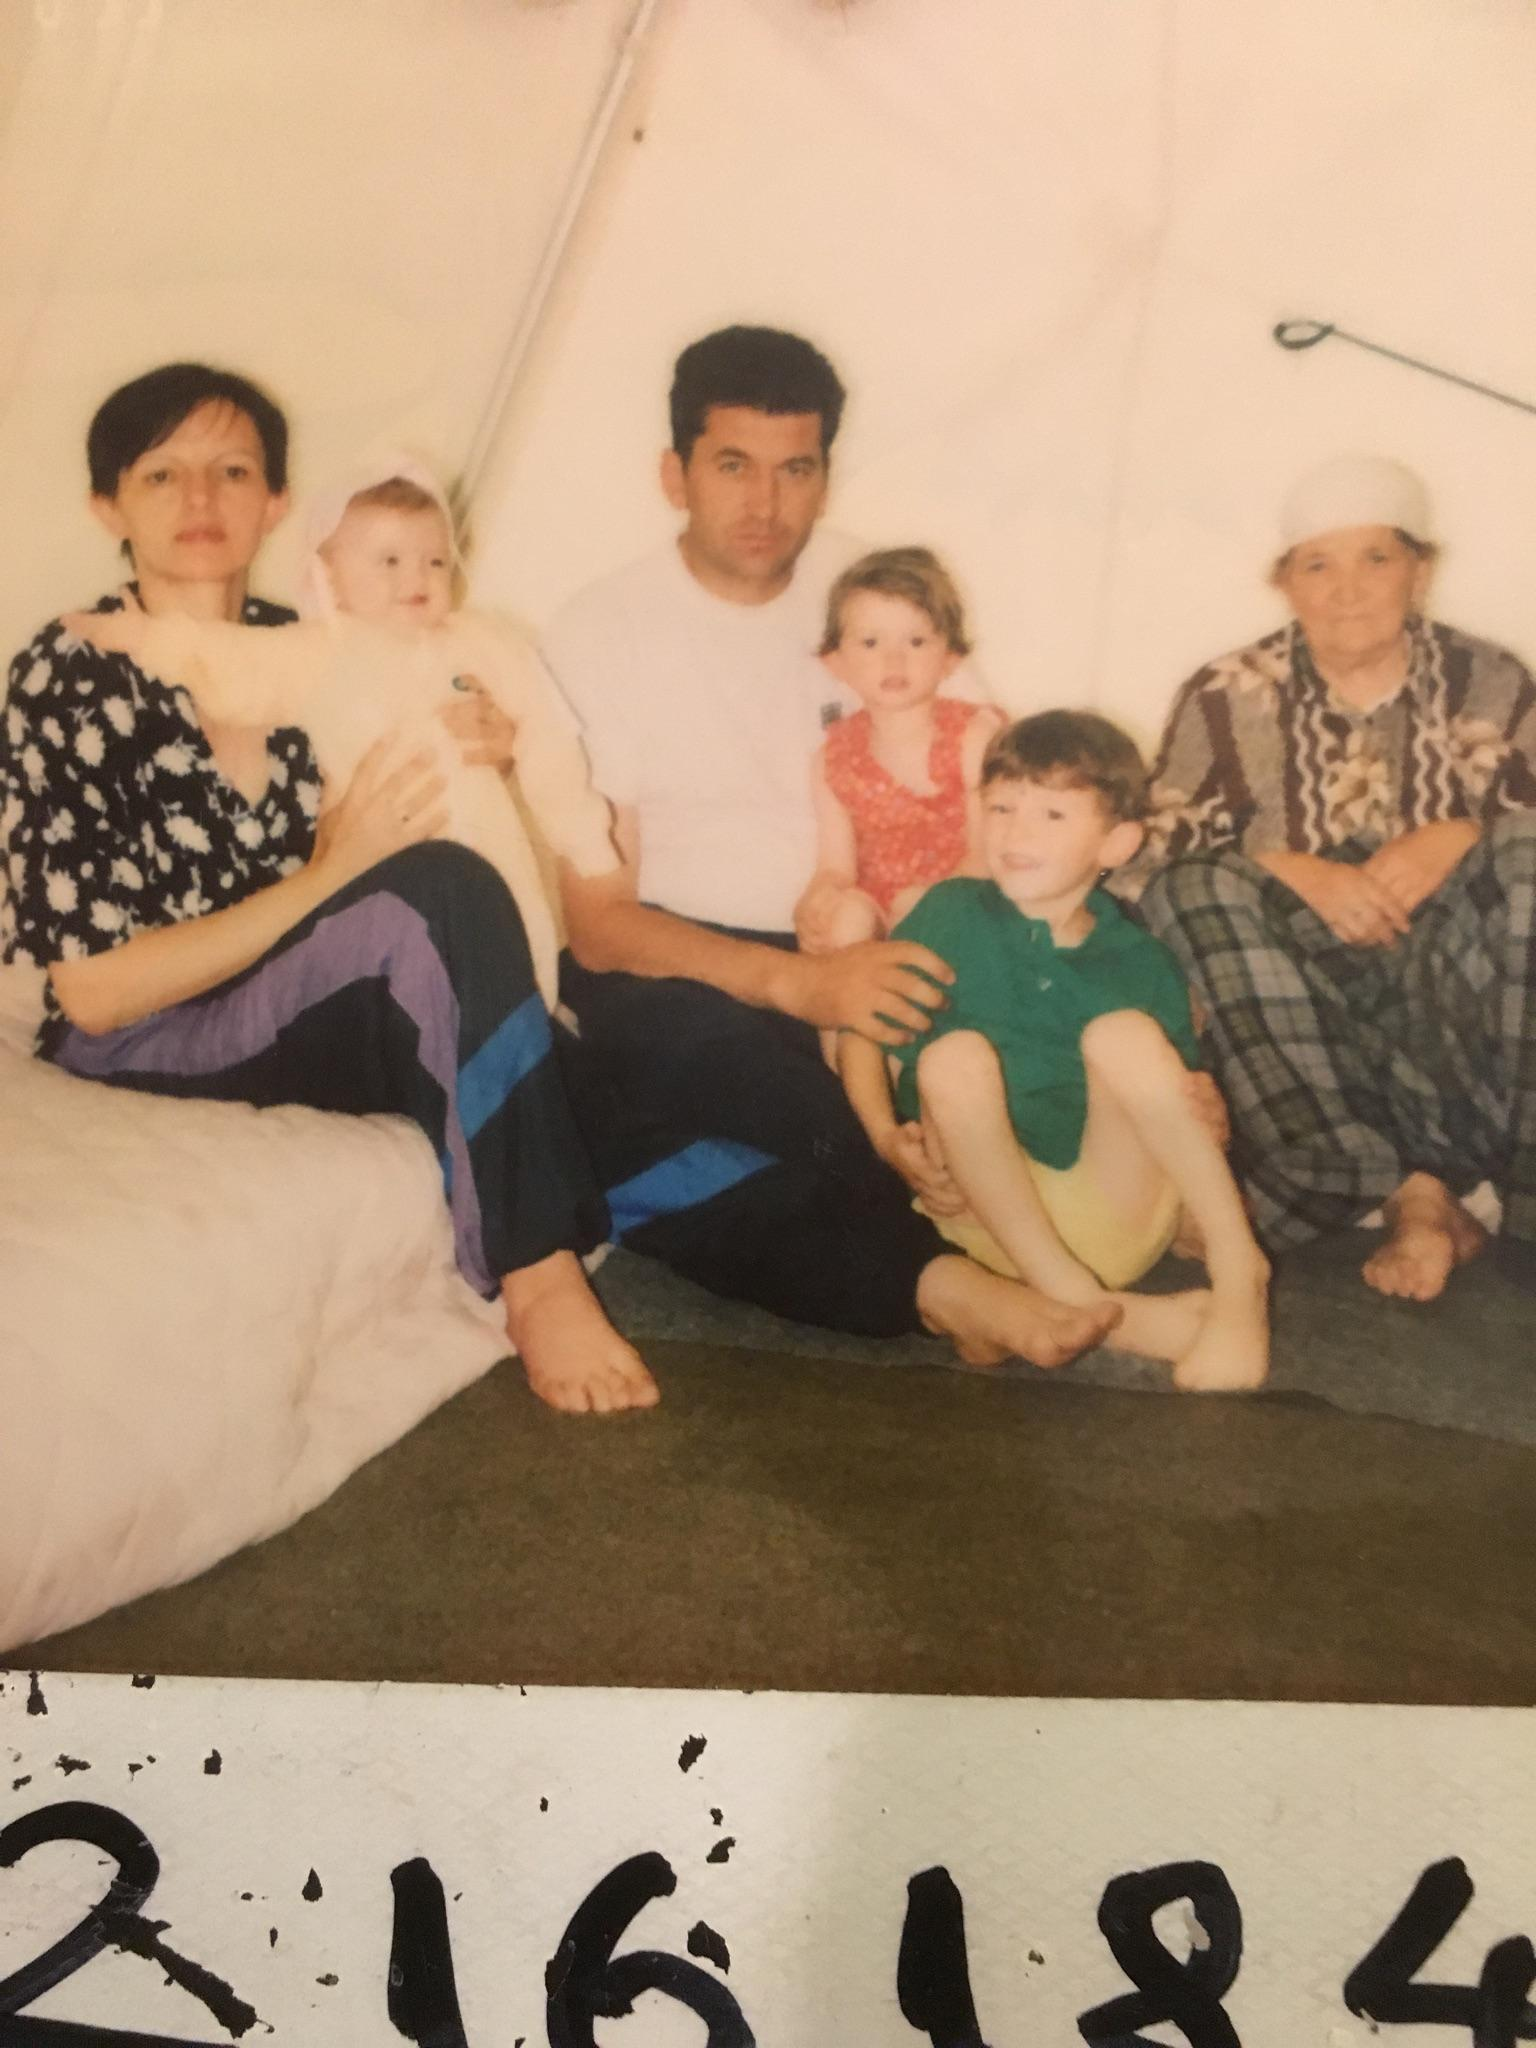 Petrit (center, in green shirt) in a refugee camp with his family.